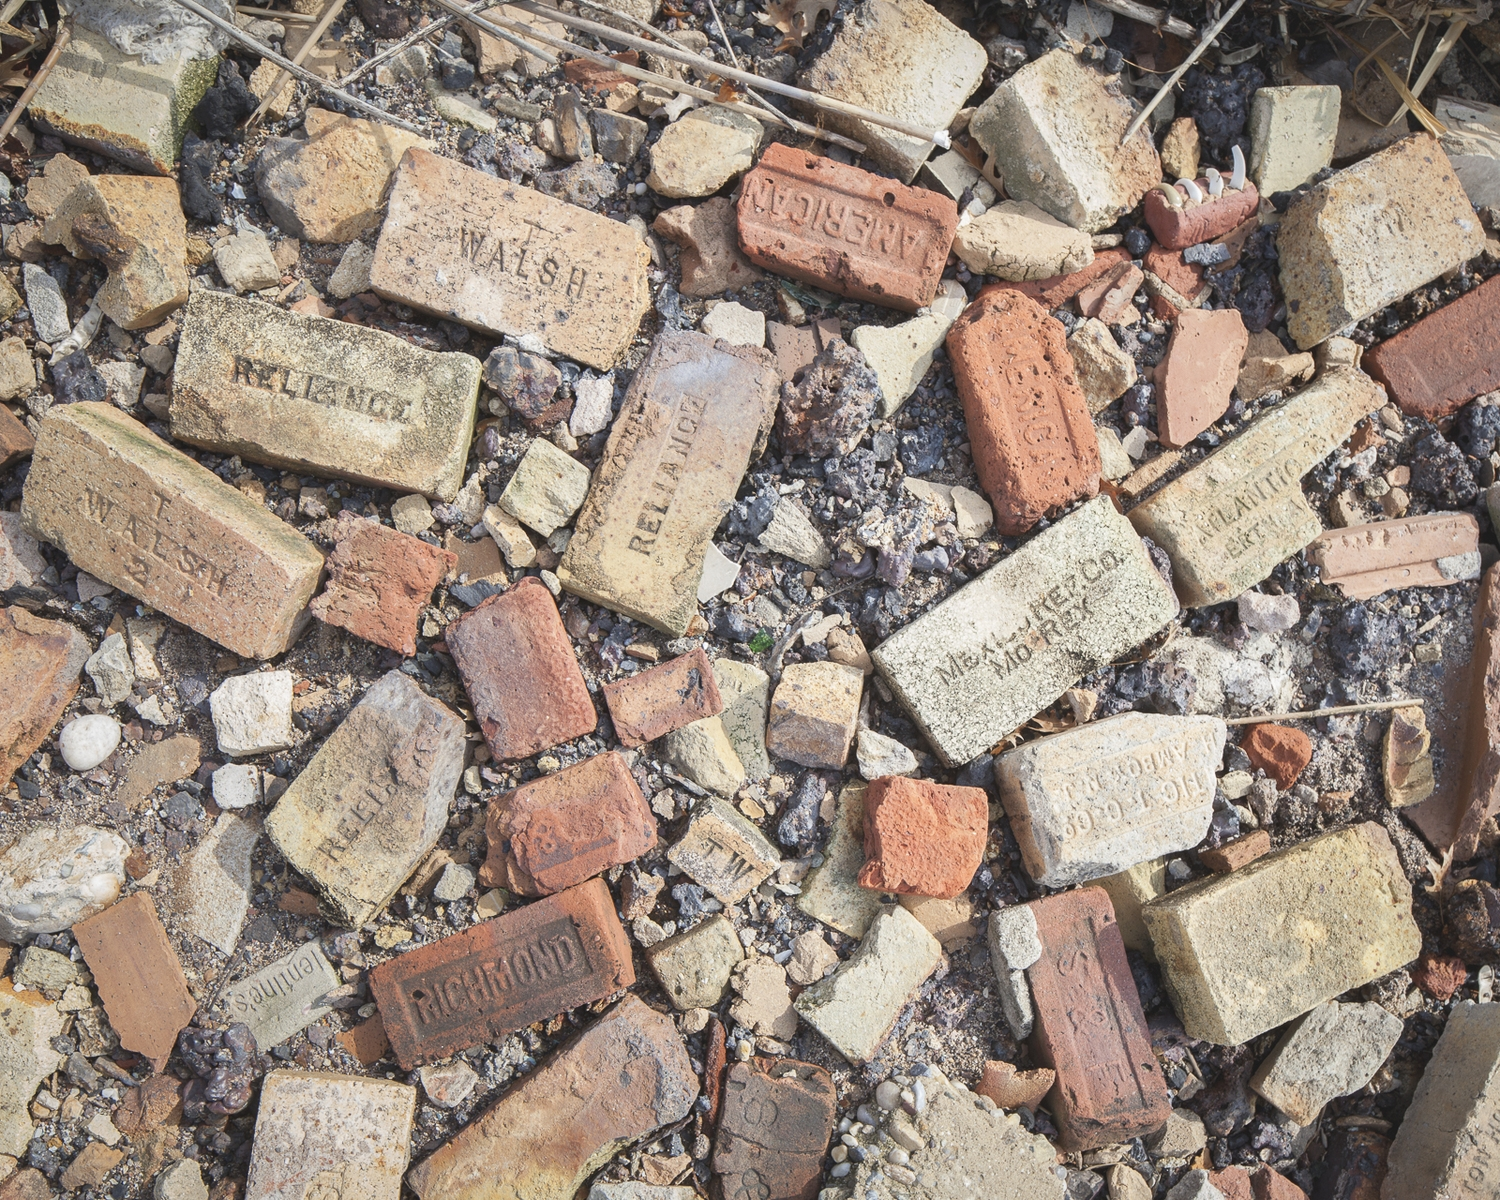 Manufacturer's marks on the bricks point to a wide range of origins.